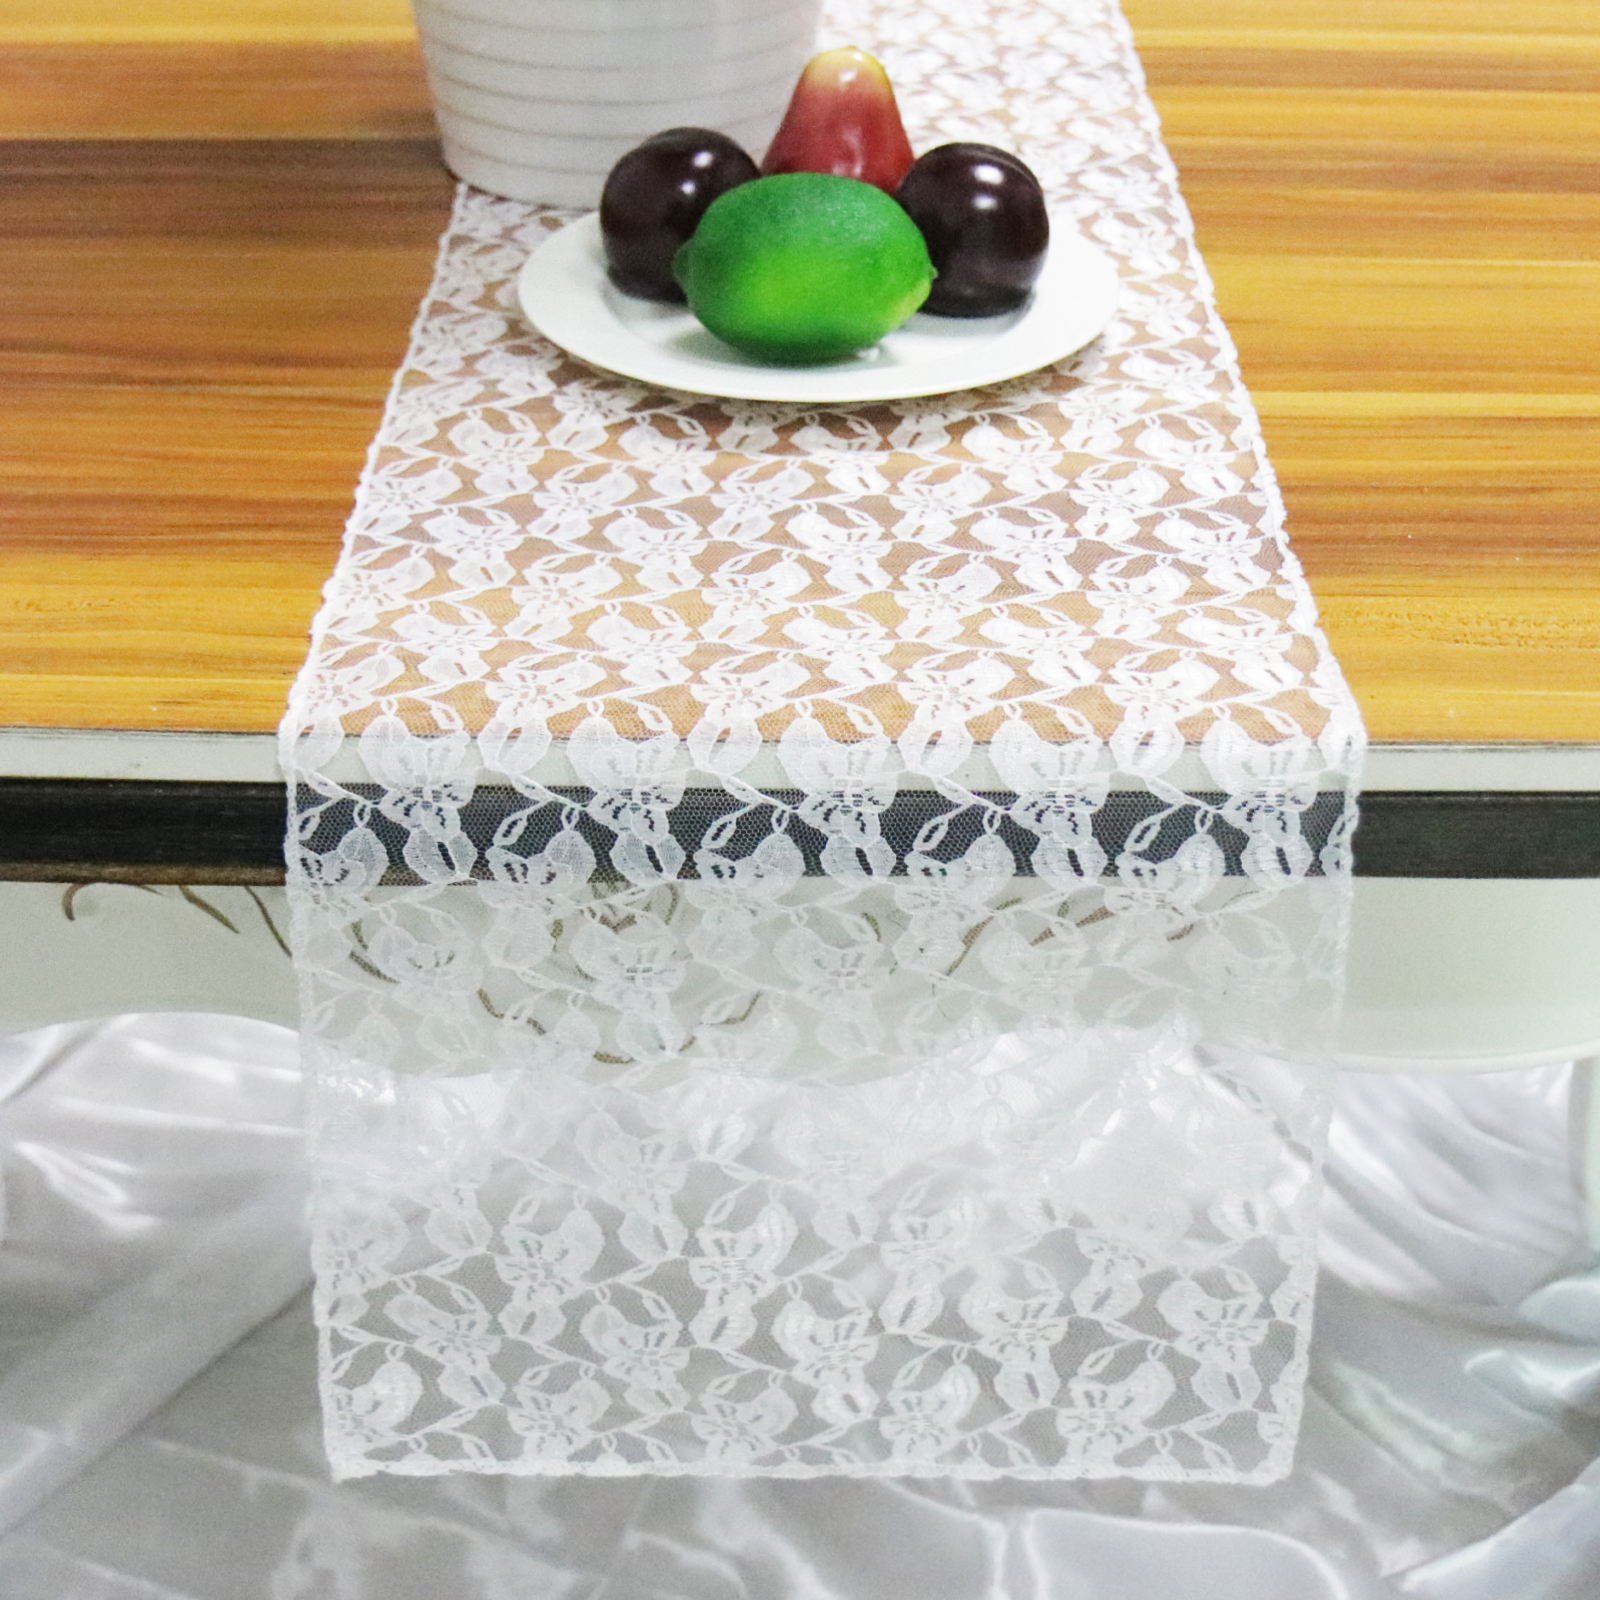 1pcs  White Lace Table Runner Floral Table Cover Modern For Wedding Decor Home Hotel Birthday Party Table Decor Supply 30*275cm